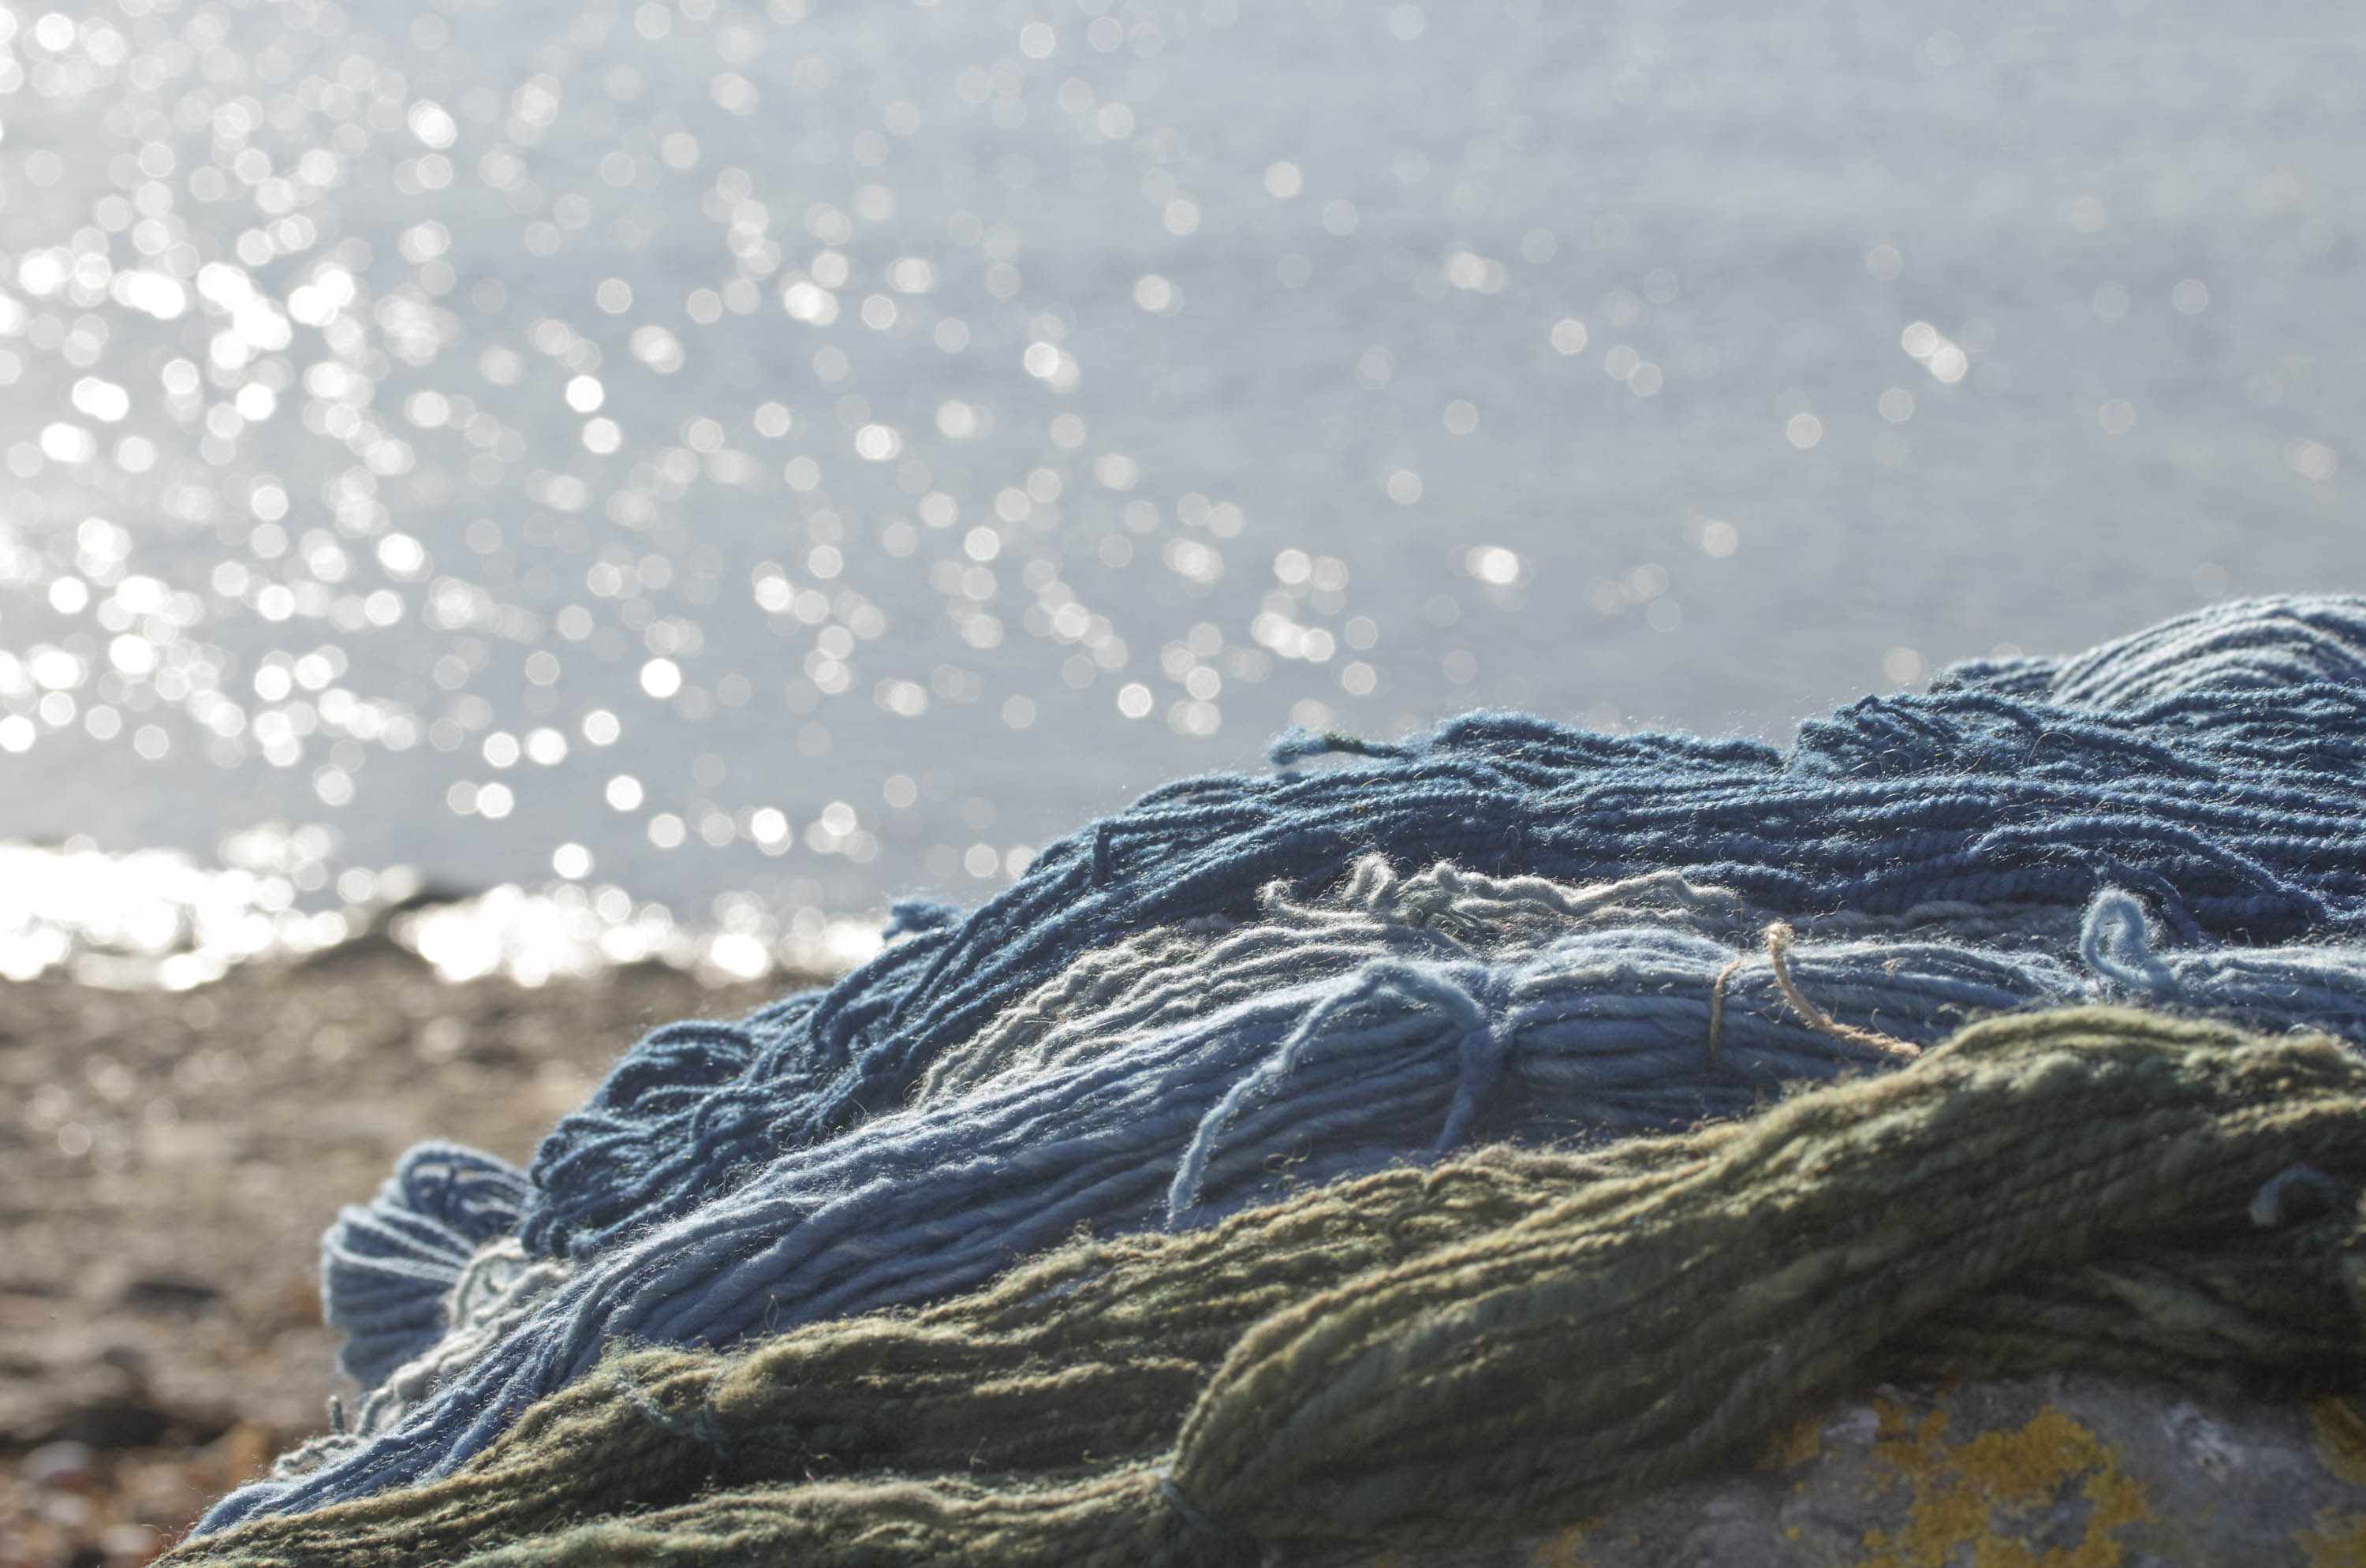 skeins of handspun yarn on a rock on the shore at Hoswick, Shetland, with a sparkling sea in the background